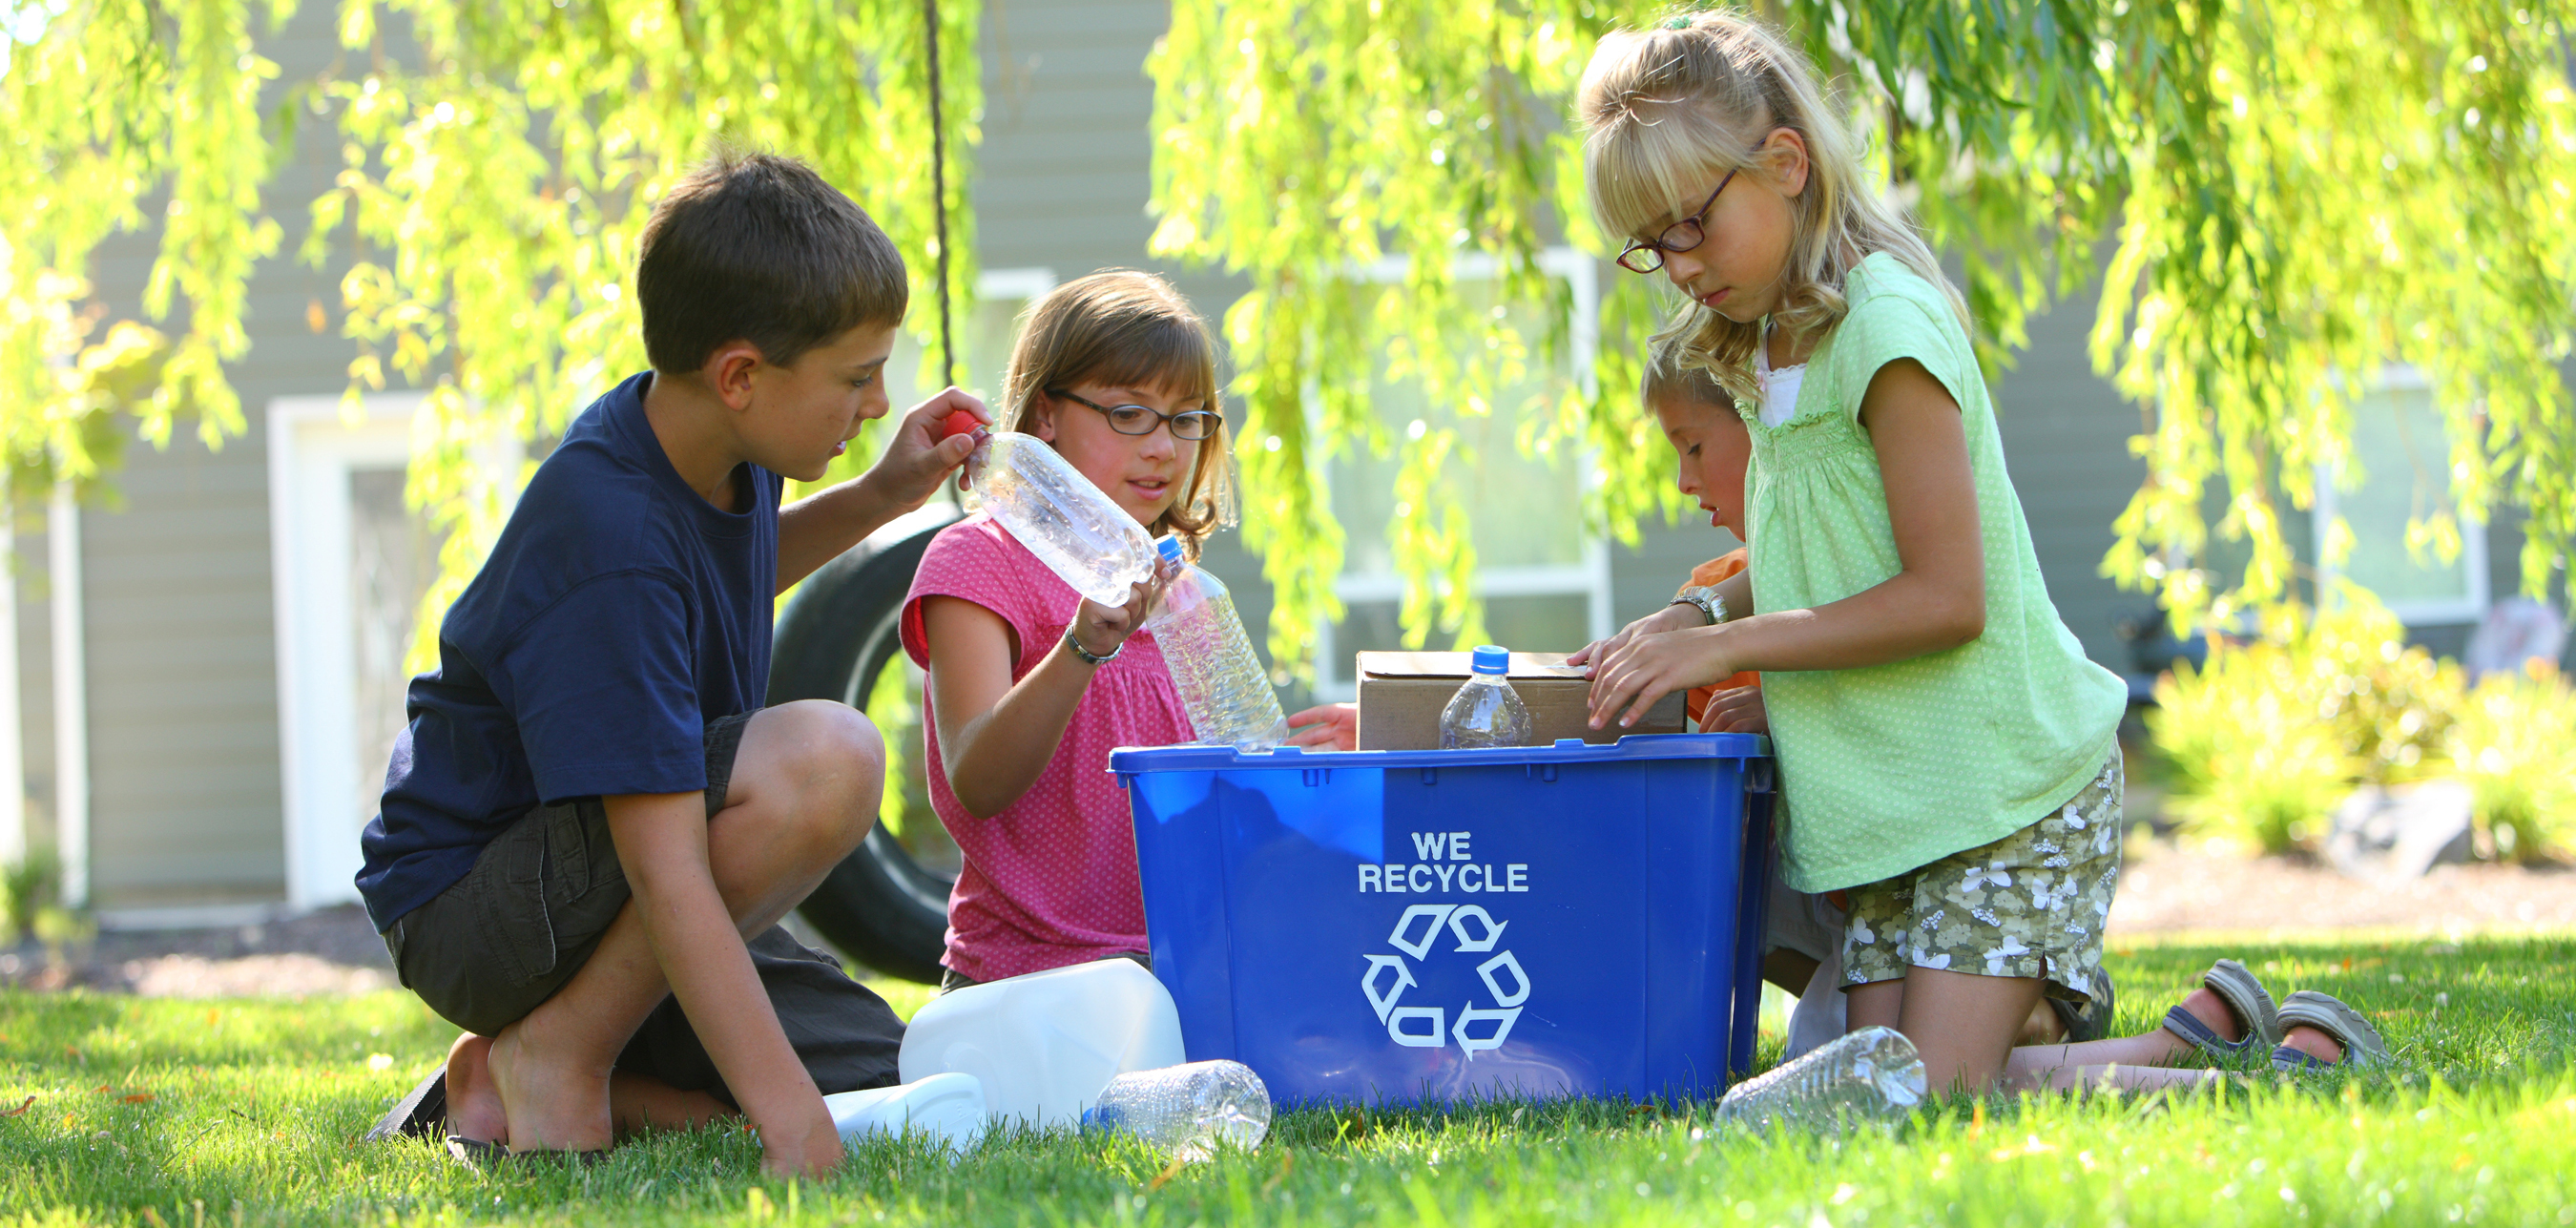 Nonprofit Keep America Beautiful Partners With Corporations to Increase Recycling in Flint, Michigan